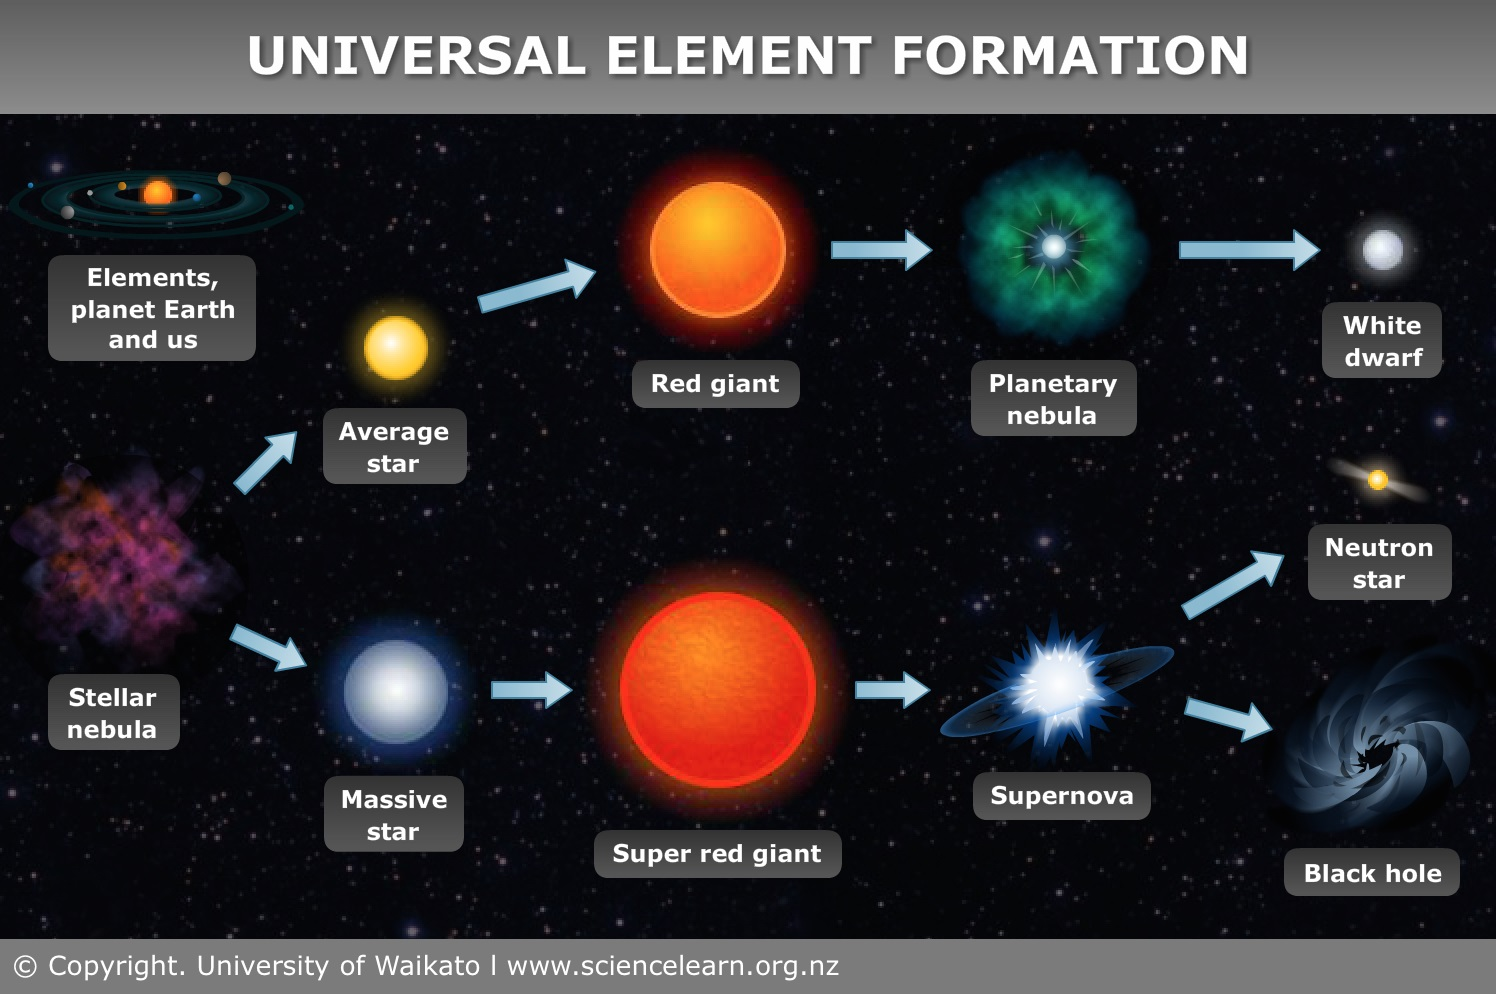 Universal Element Formation Science Learning Hub Planet Inside Earth Diagram Pics About Space Long Dead Stars Says Sir Martin Rees Professor Of Cosmology And Astrophysics University Cambridge As Evolved In After The Big Bang